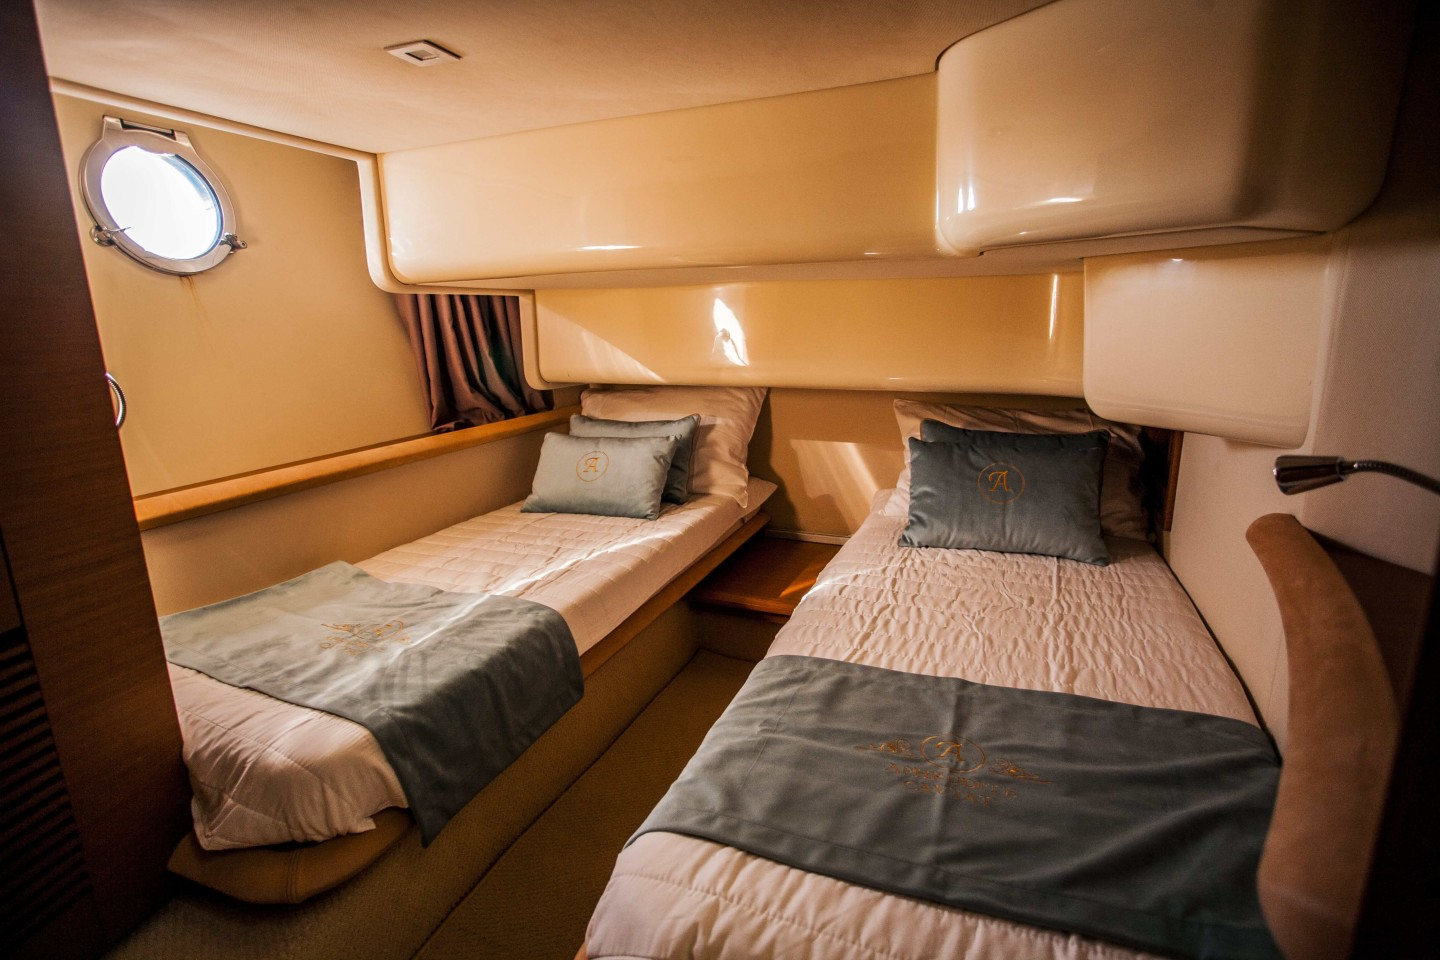 azimut 43 dubrovnik 28 spacious yacht bedroom